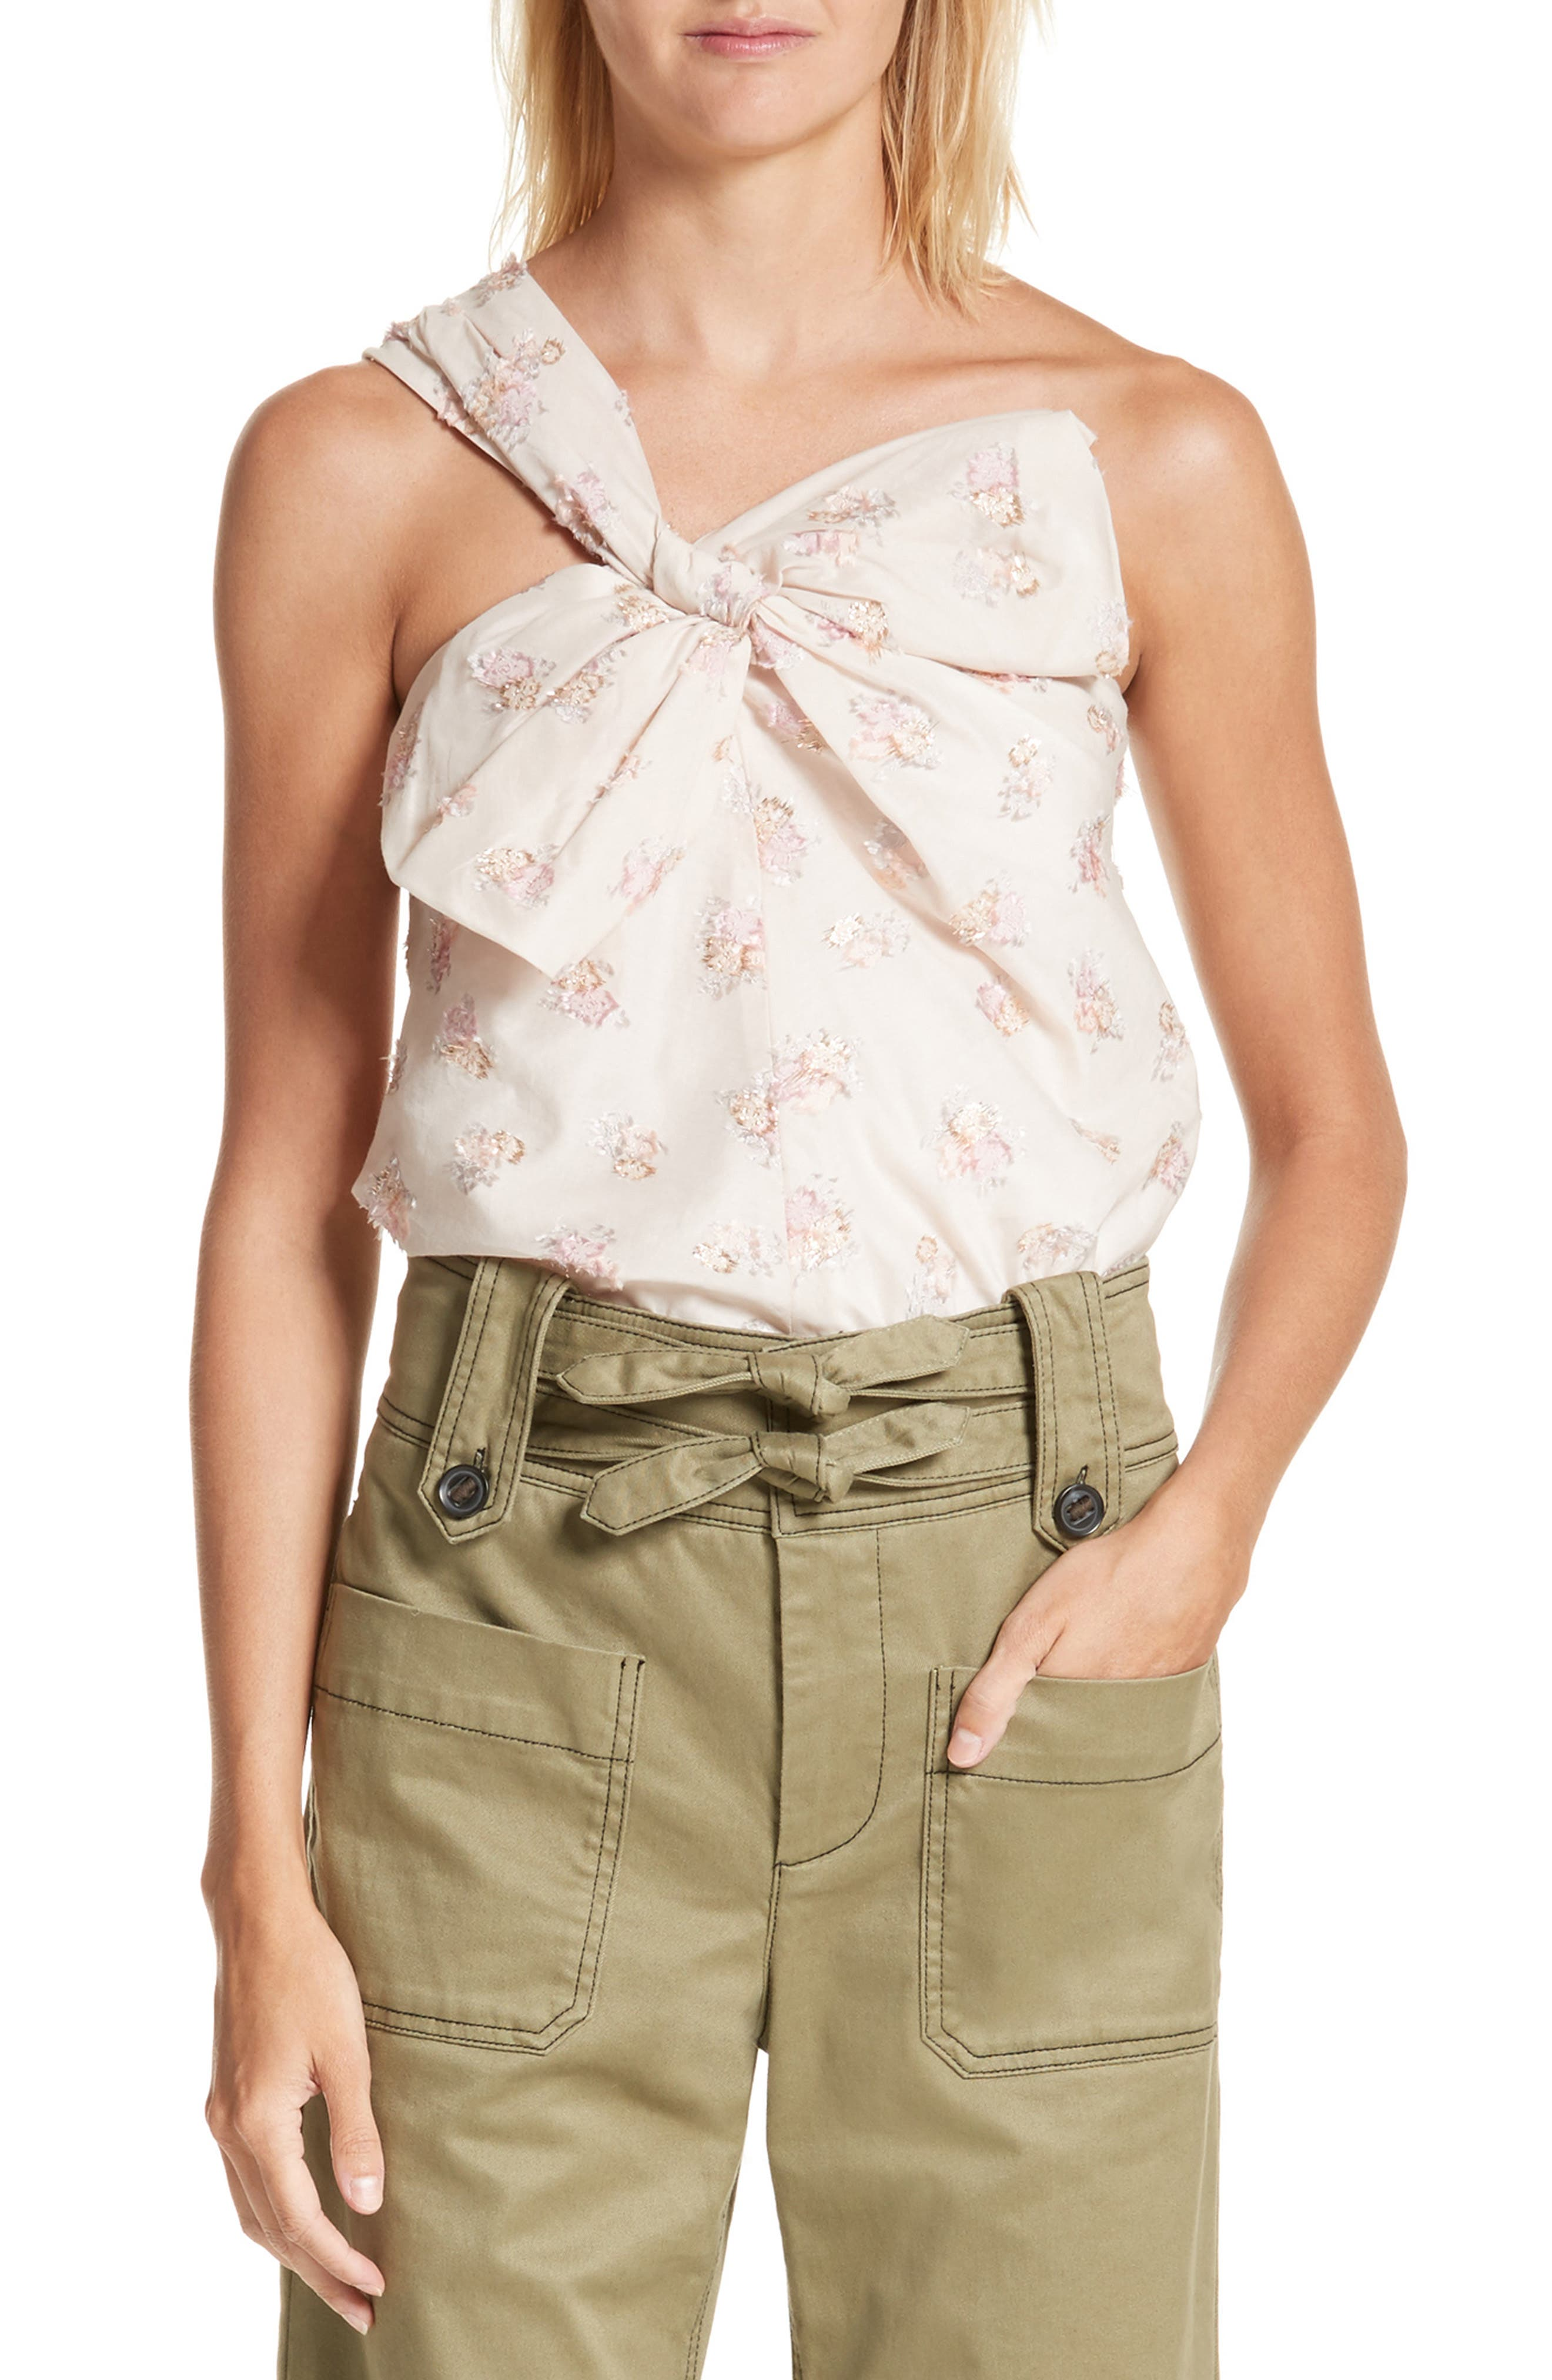 Main Image - Rebecca Taylor Bow Front Floral Jacquard Top